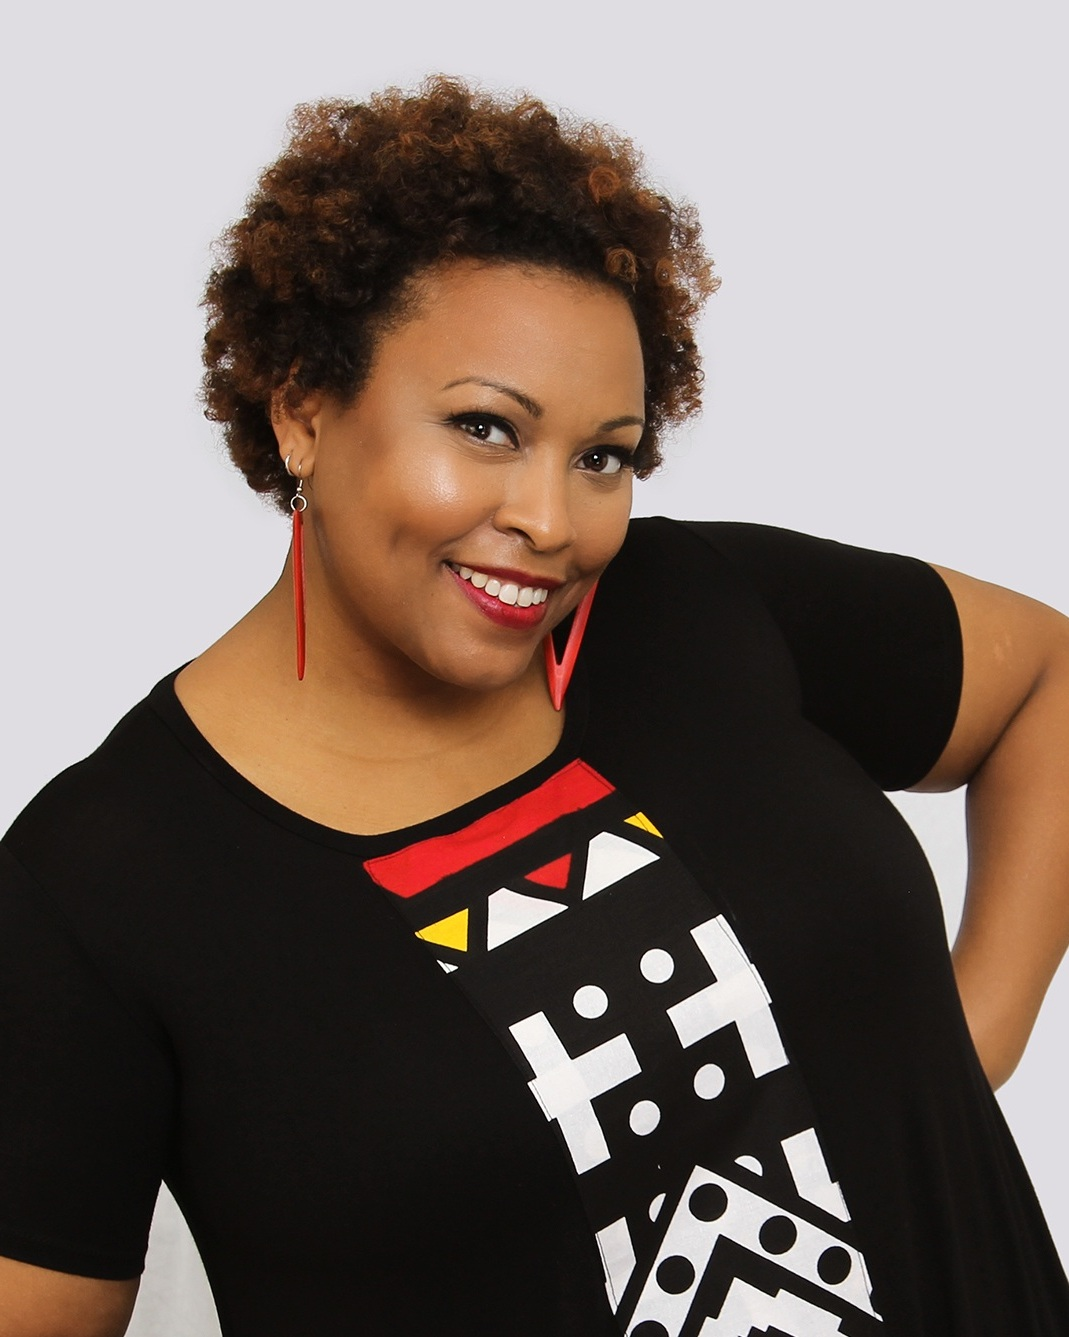 Ella Turenne - Social Impact Advisor and TrainerElla Turenne is an award-winning artist as well as experienced educator, trainer, changemaker and entrepreneur whose work focuses on the power of using art as a tool for social change.